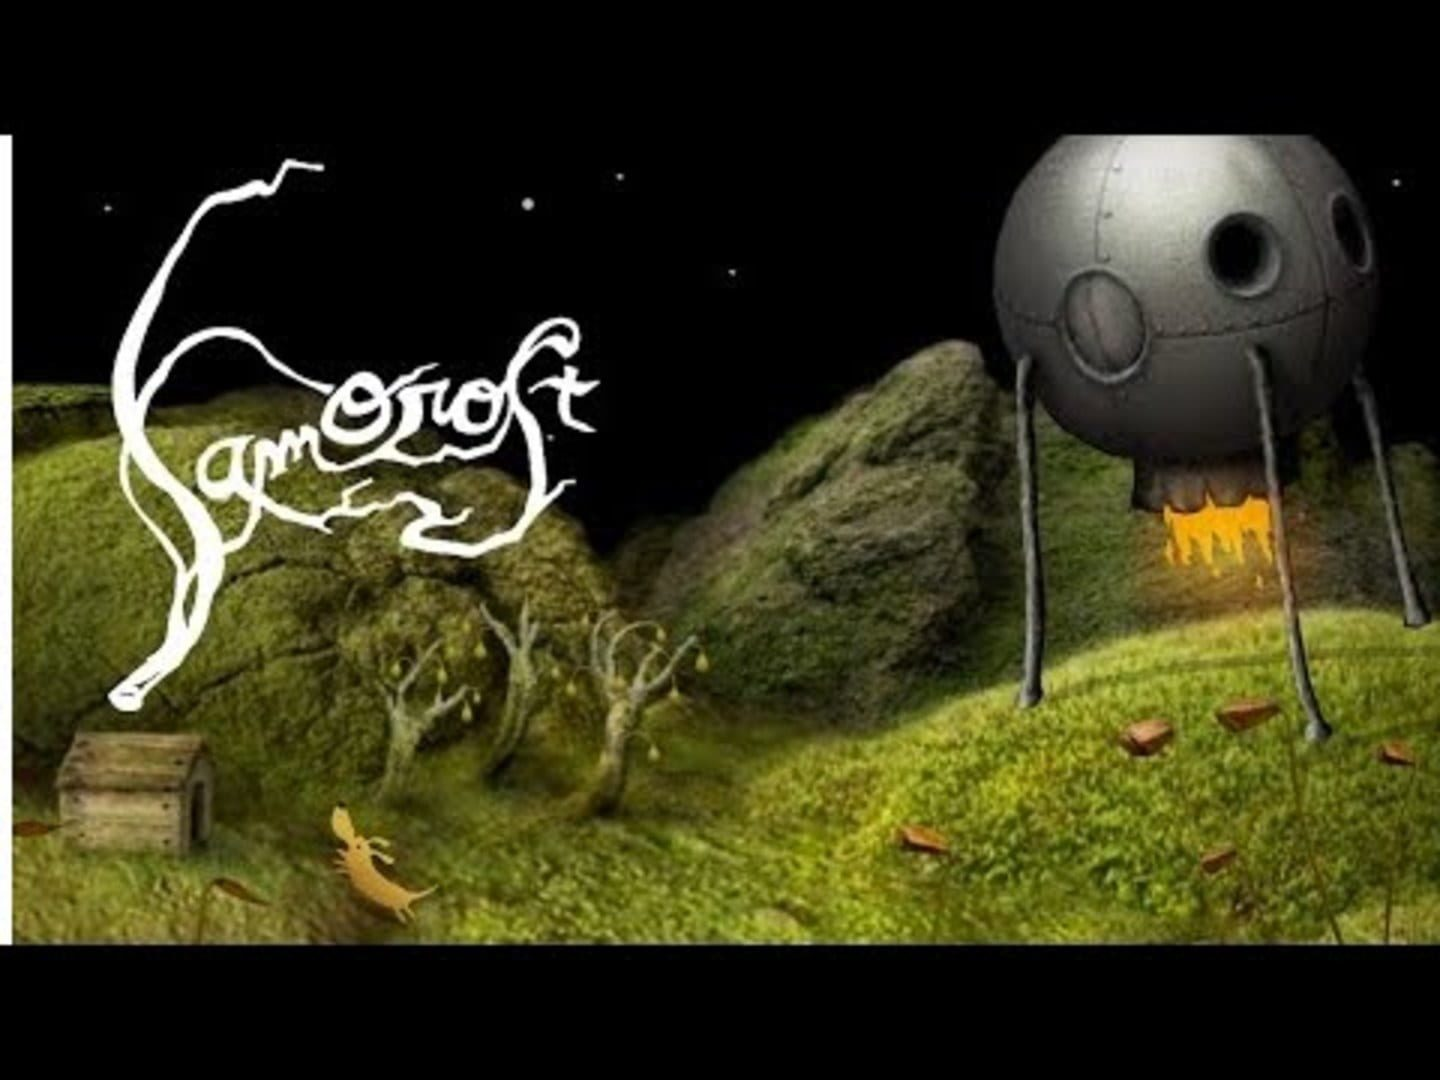 buy Samorost cd key for xbox platform